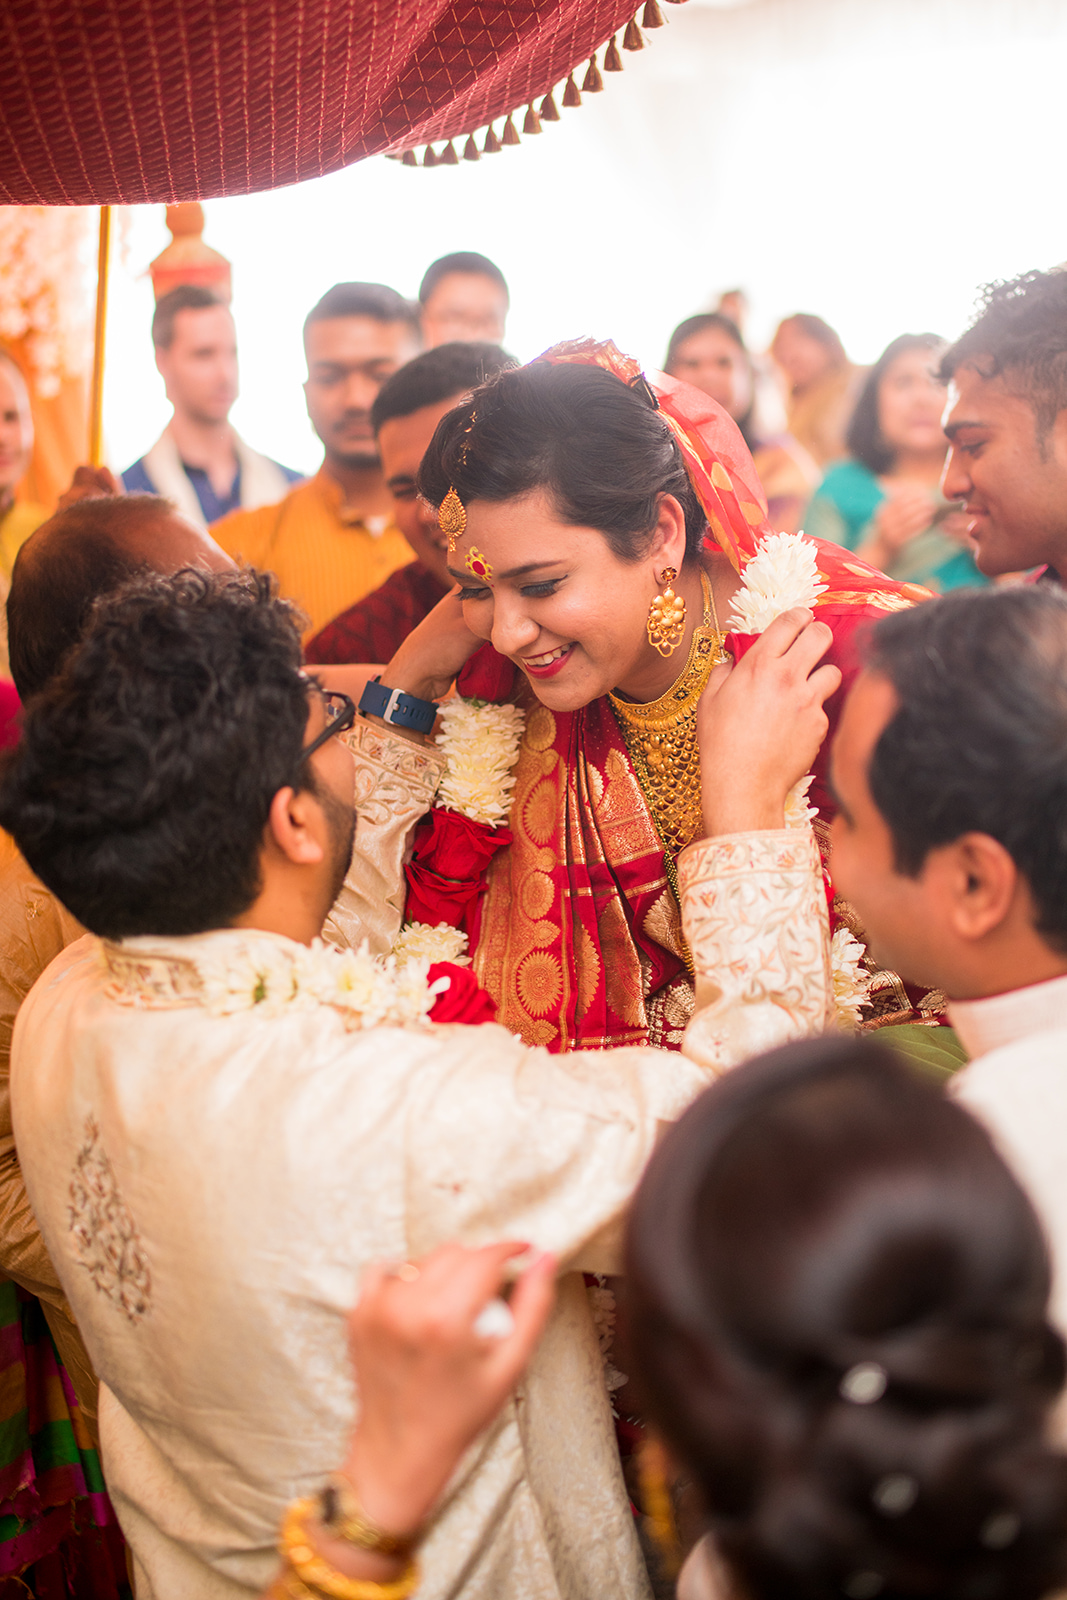 Le Cape Weddings - South Asian Wedding - Ishani and Sidhart - Ceremony-32.jpg